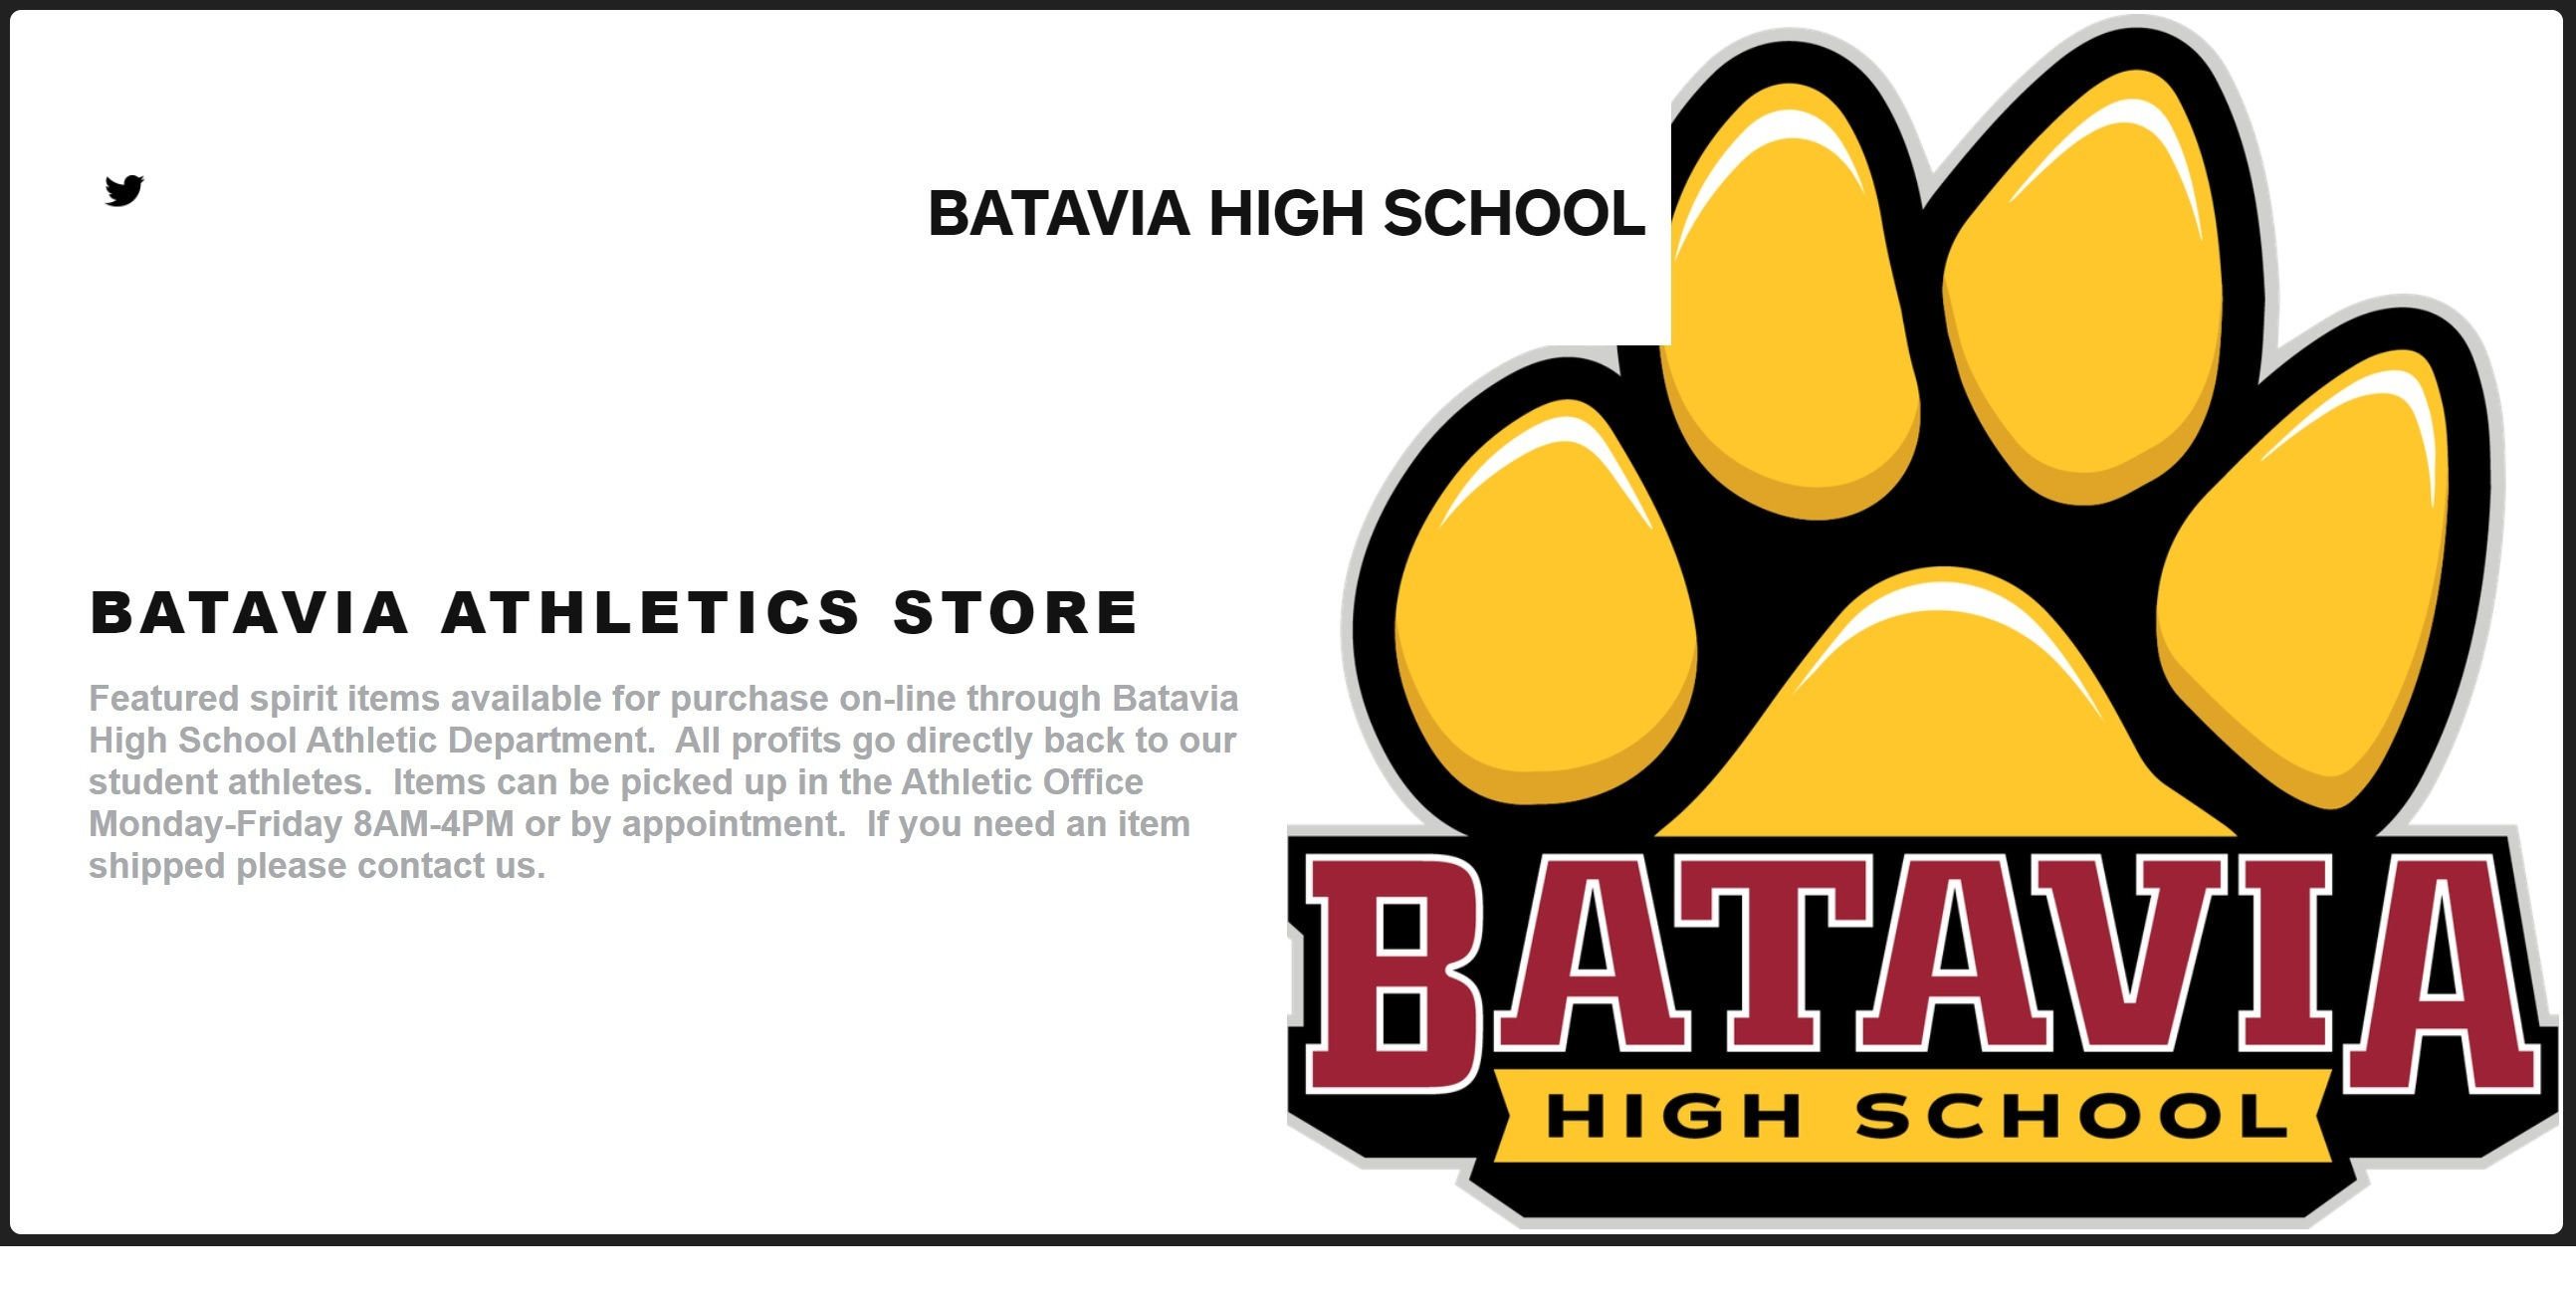 BHS_Athletics_Store